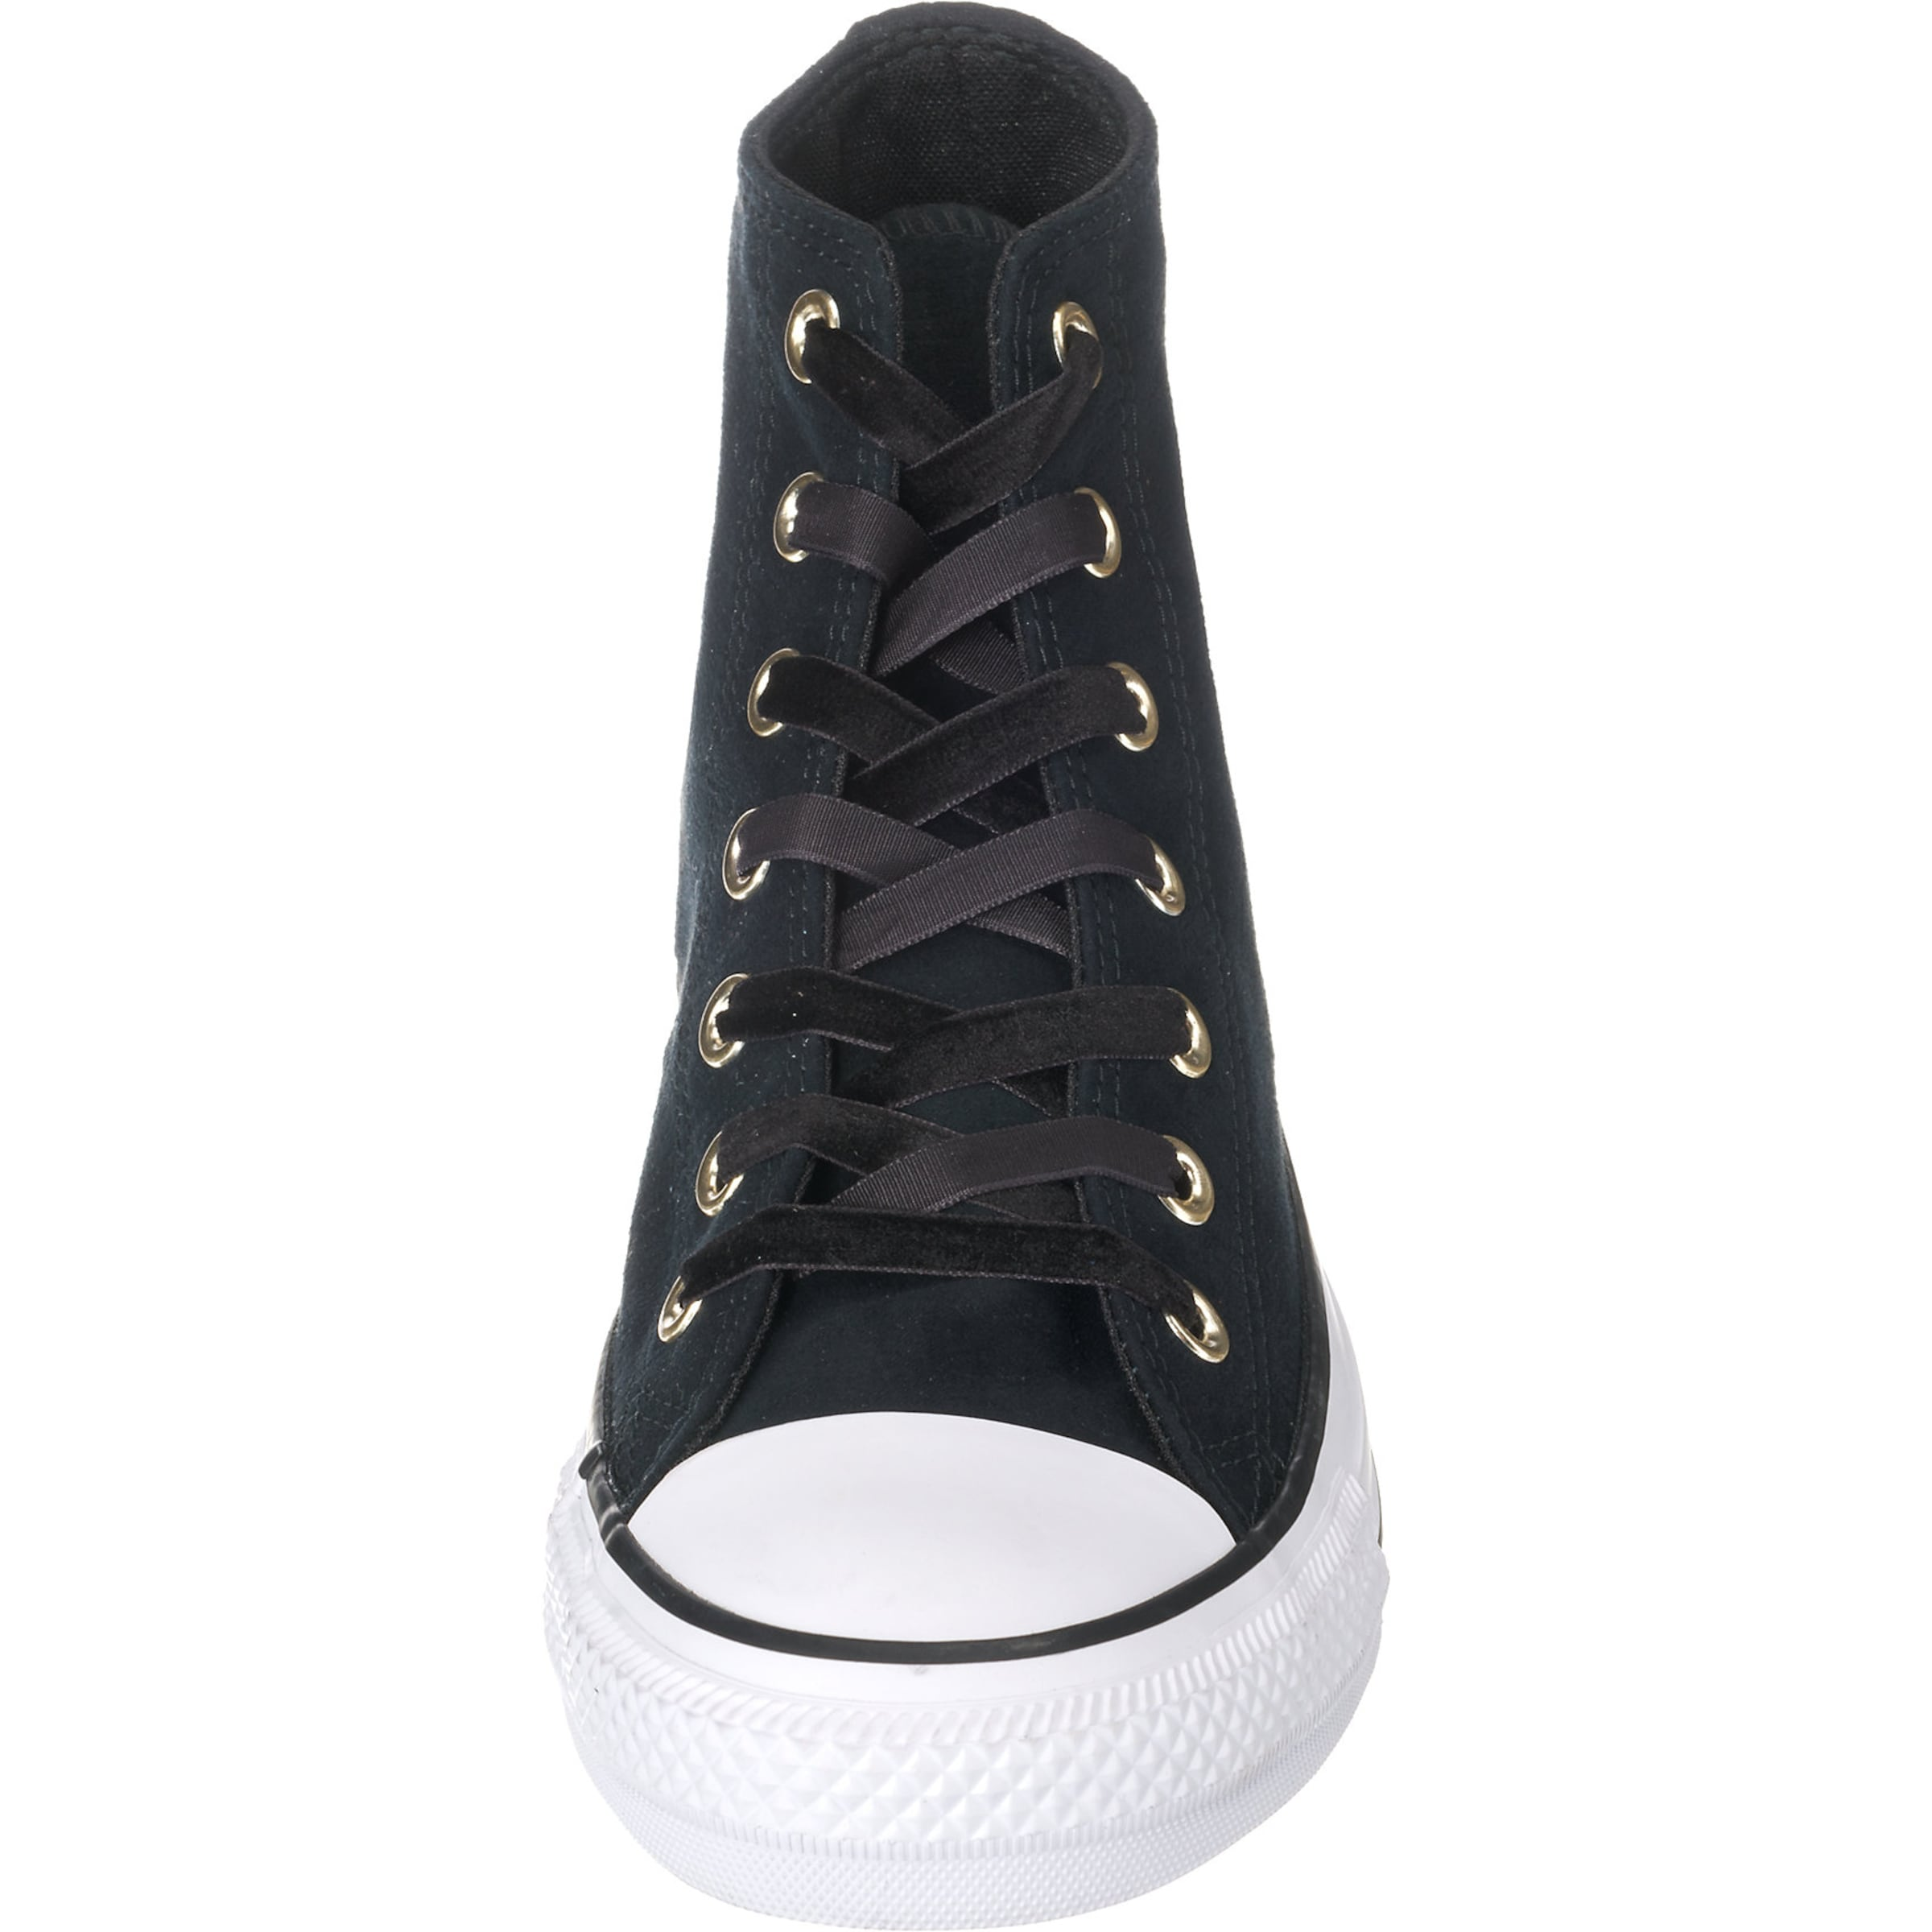 Sneakers All In 'chuck Taylor Star' Converse Schwarz qSzMVUp